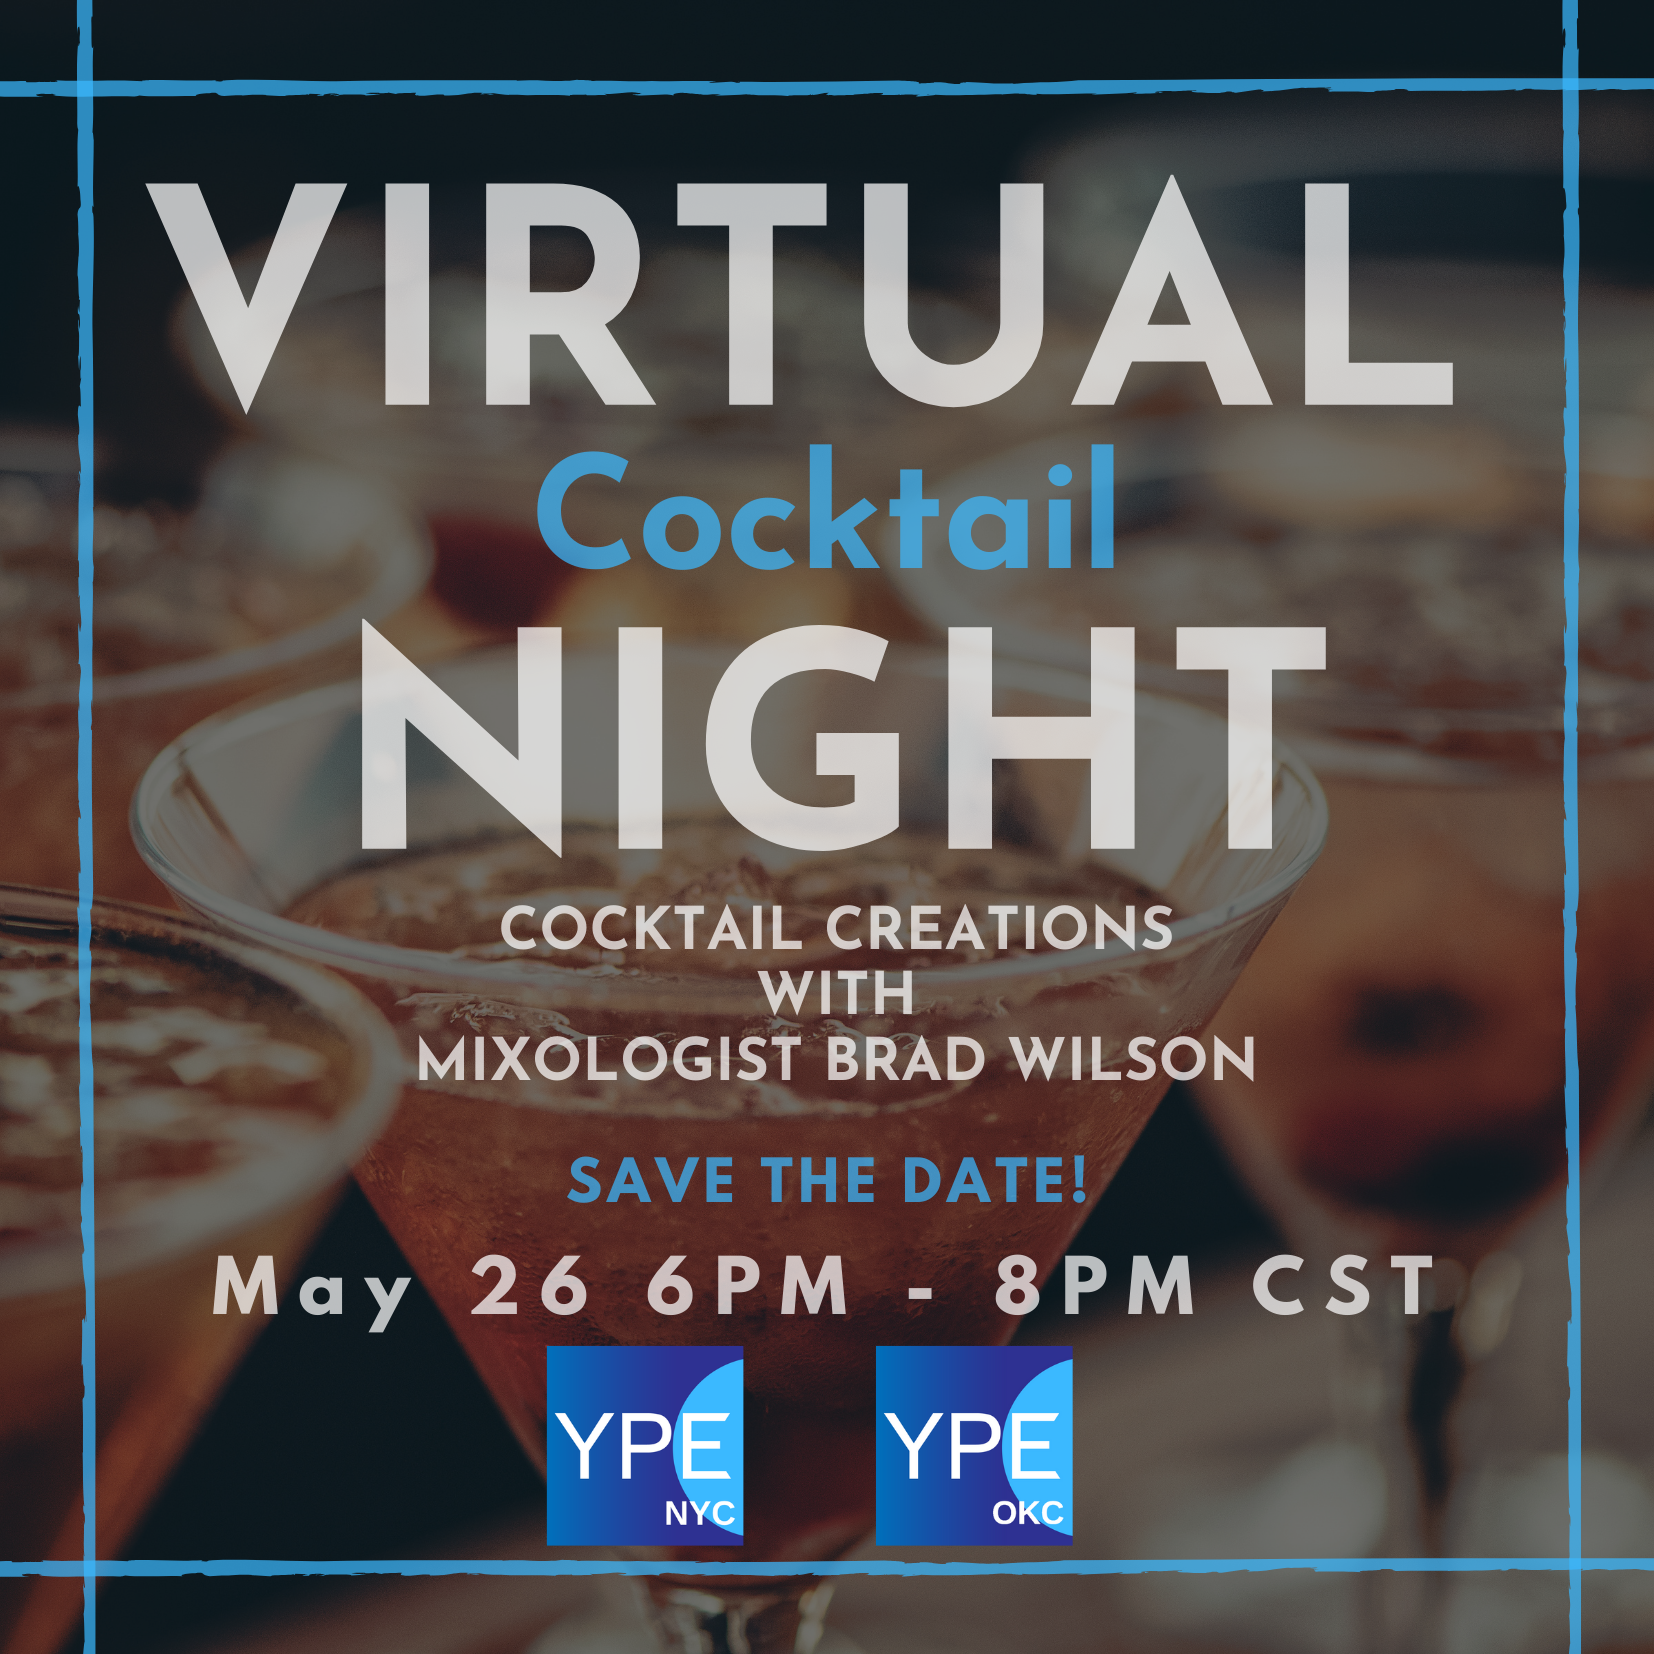 Save the Date - Virtual Cocktail Night